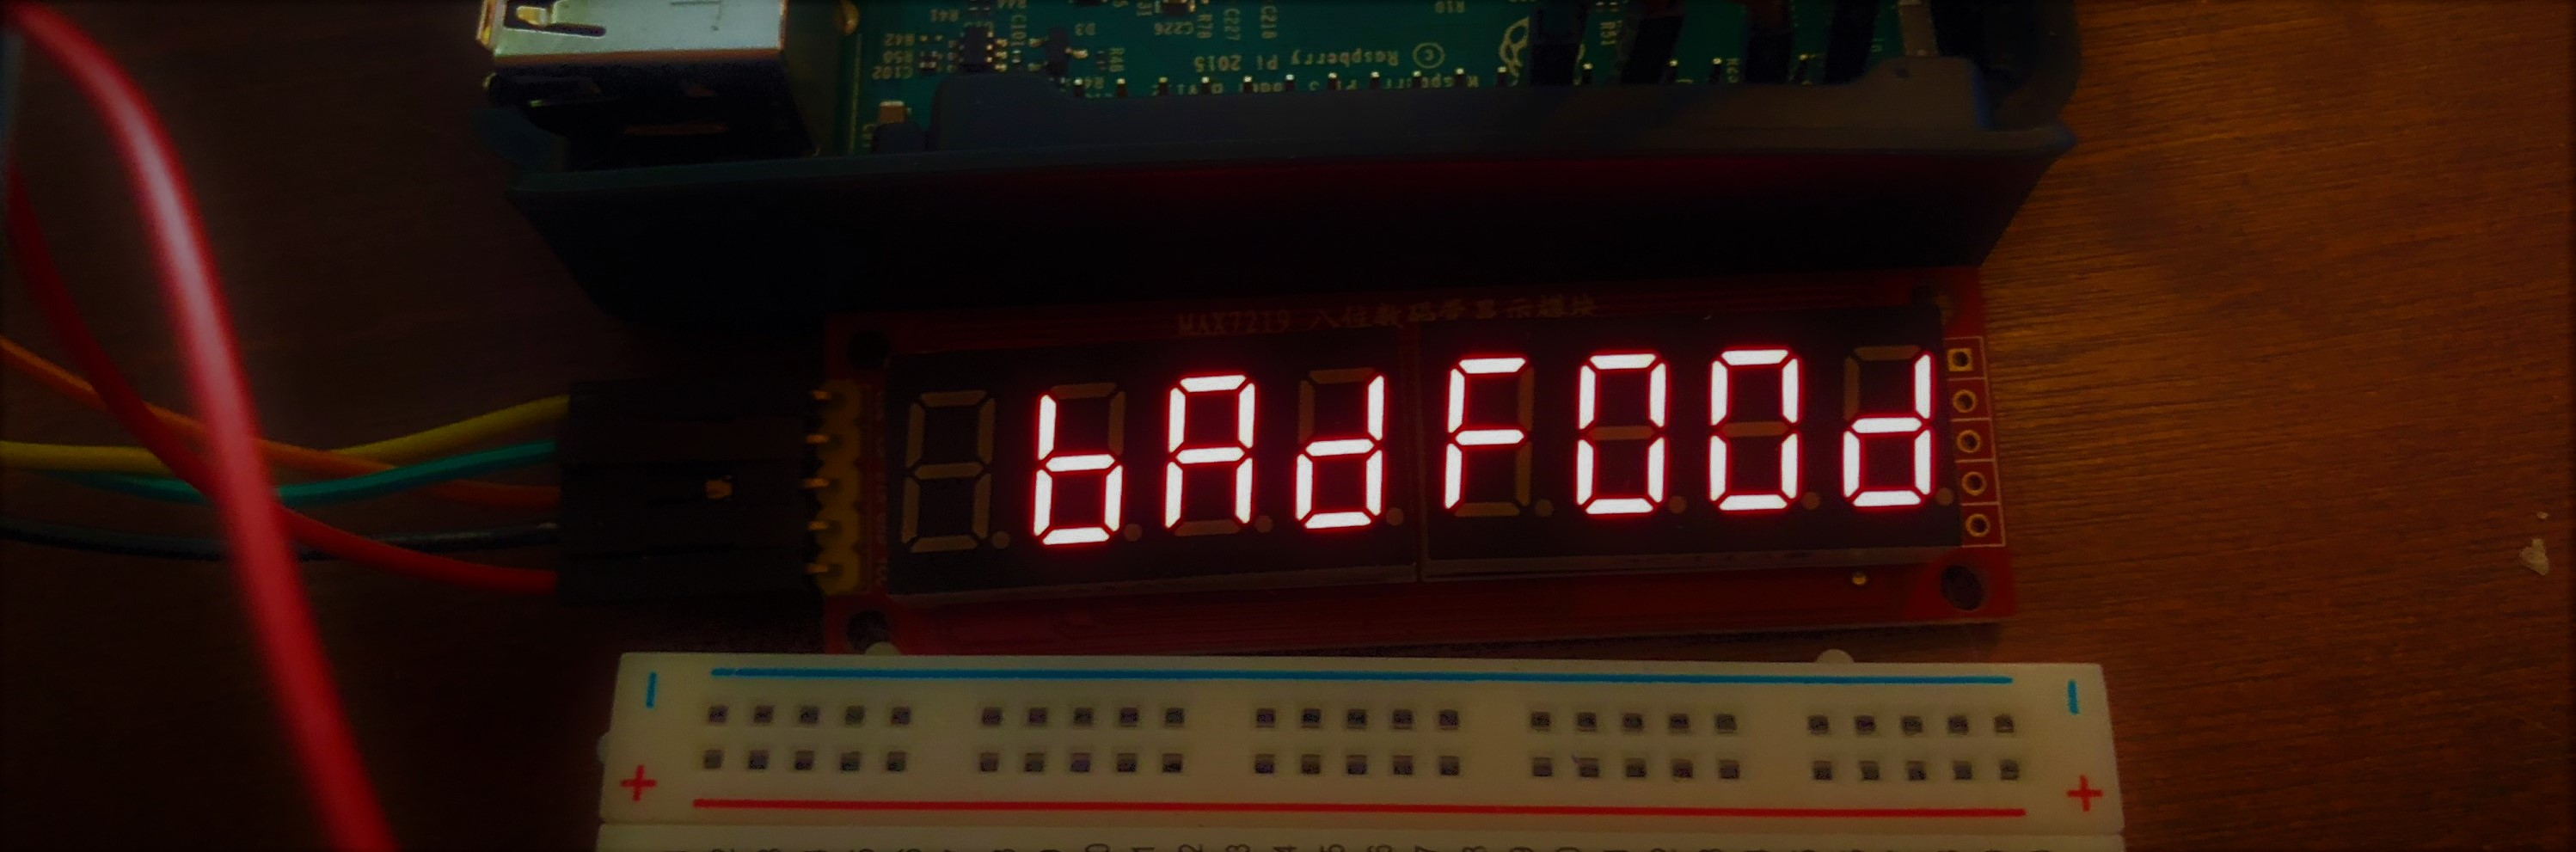 Max 7219 7 Segment Module In Aspnet Webapi Core 2 On The Raspberry Pi Bcd To Sevensegment Decoder With A Seven Led Display